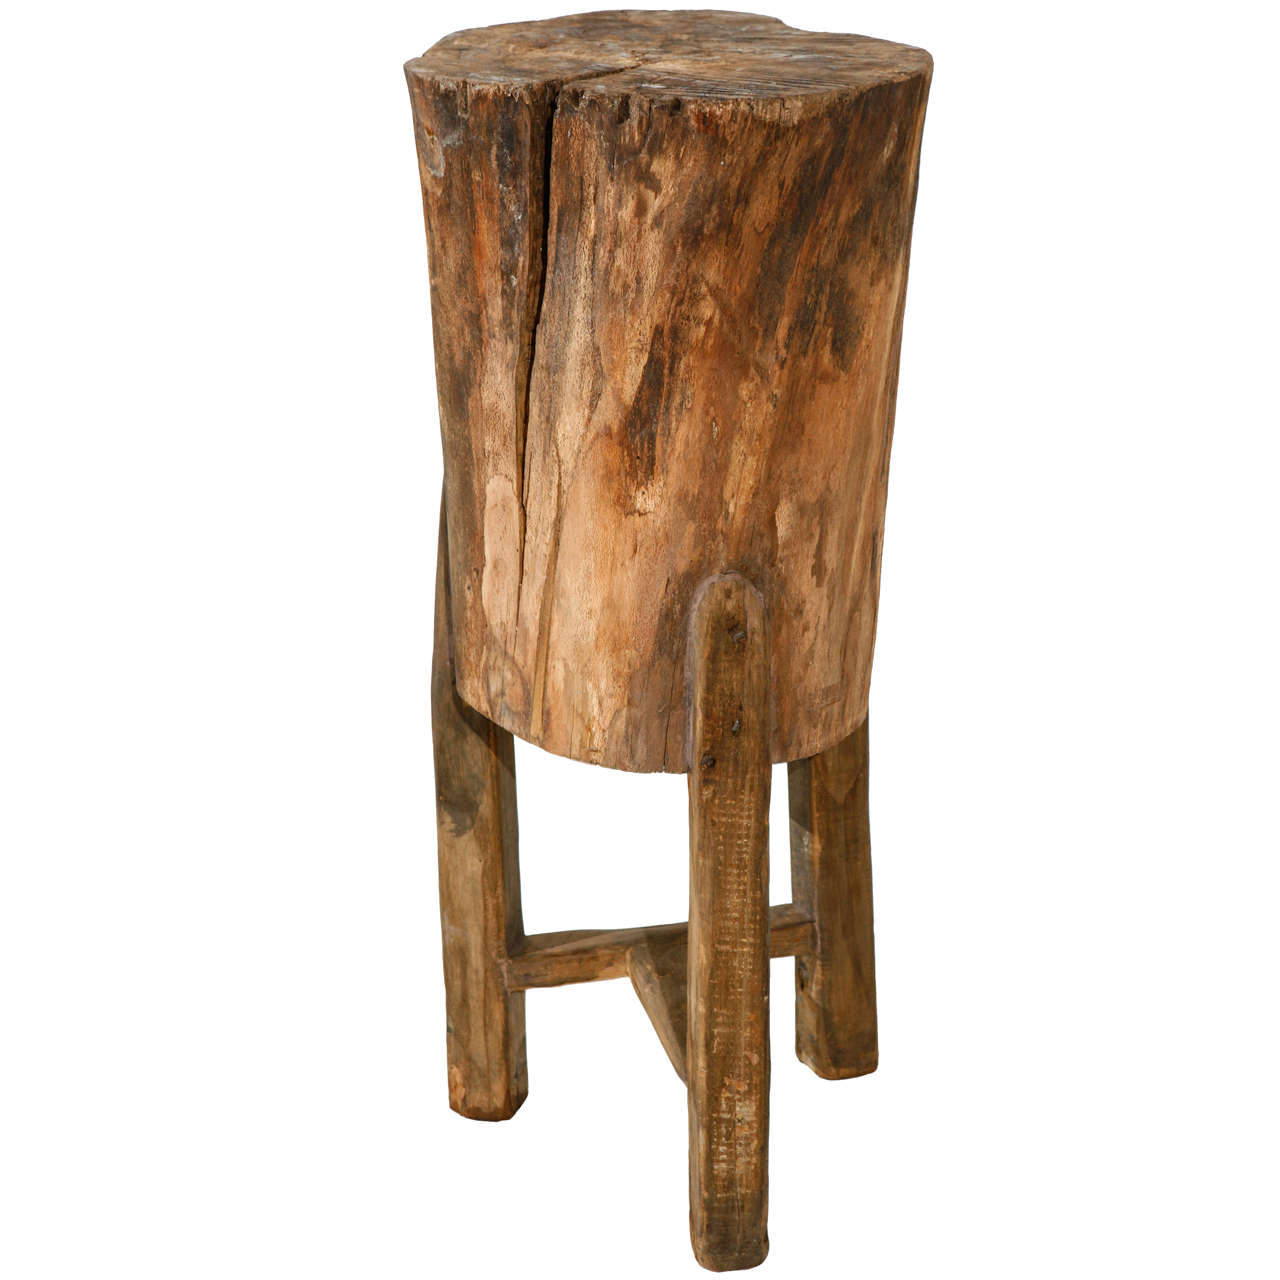 tall pedestal side table jonathan steele accent rustic italian tree stump thin bedside narrow trestle designs replica sofa black half moon antique vintage tables ikea wooden bench